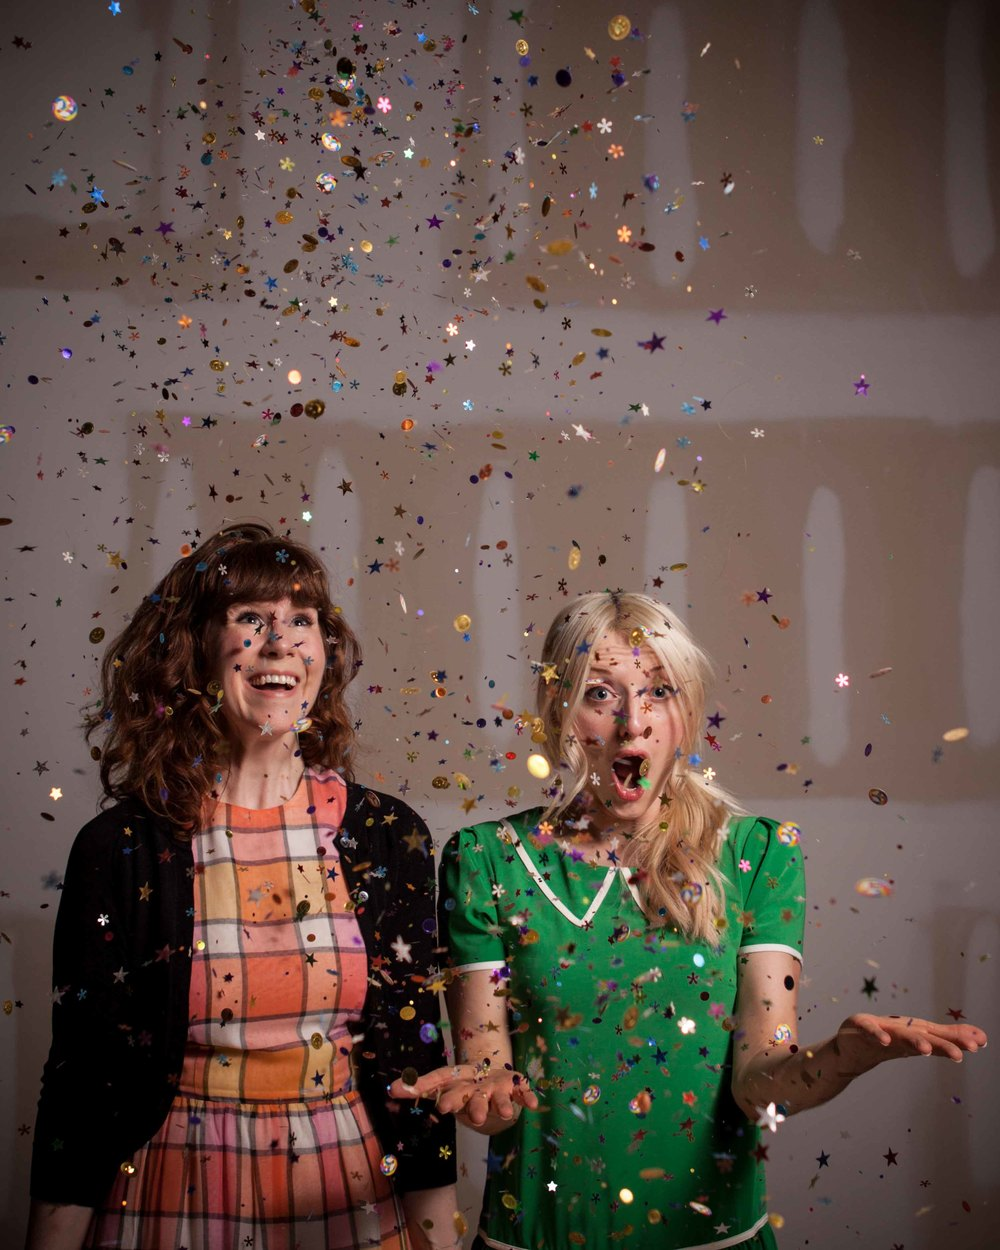 Oh the joy that is confetti!